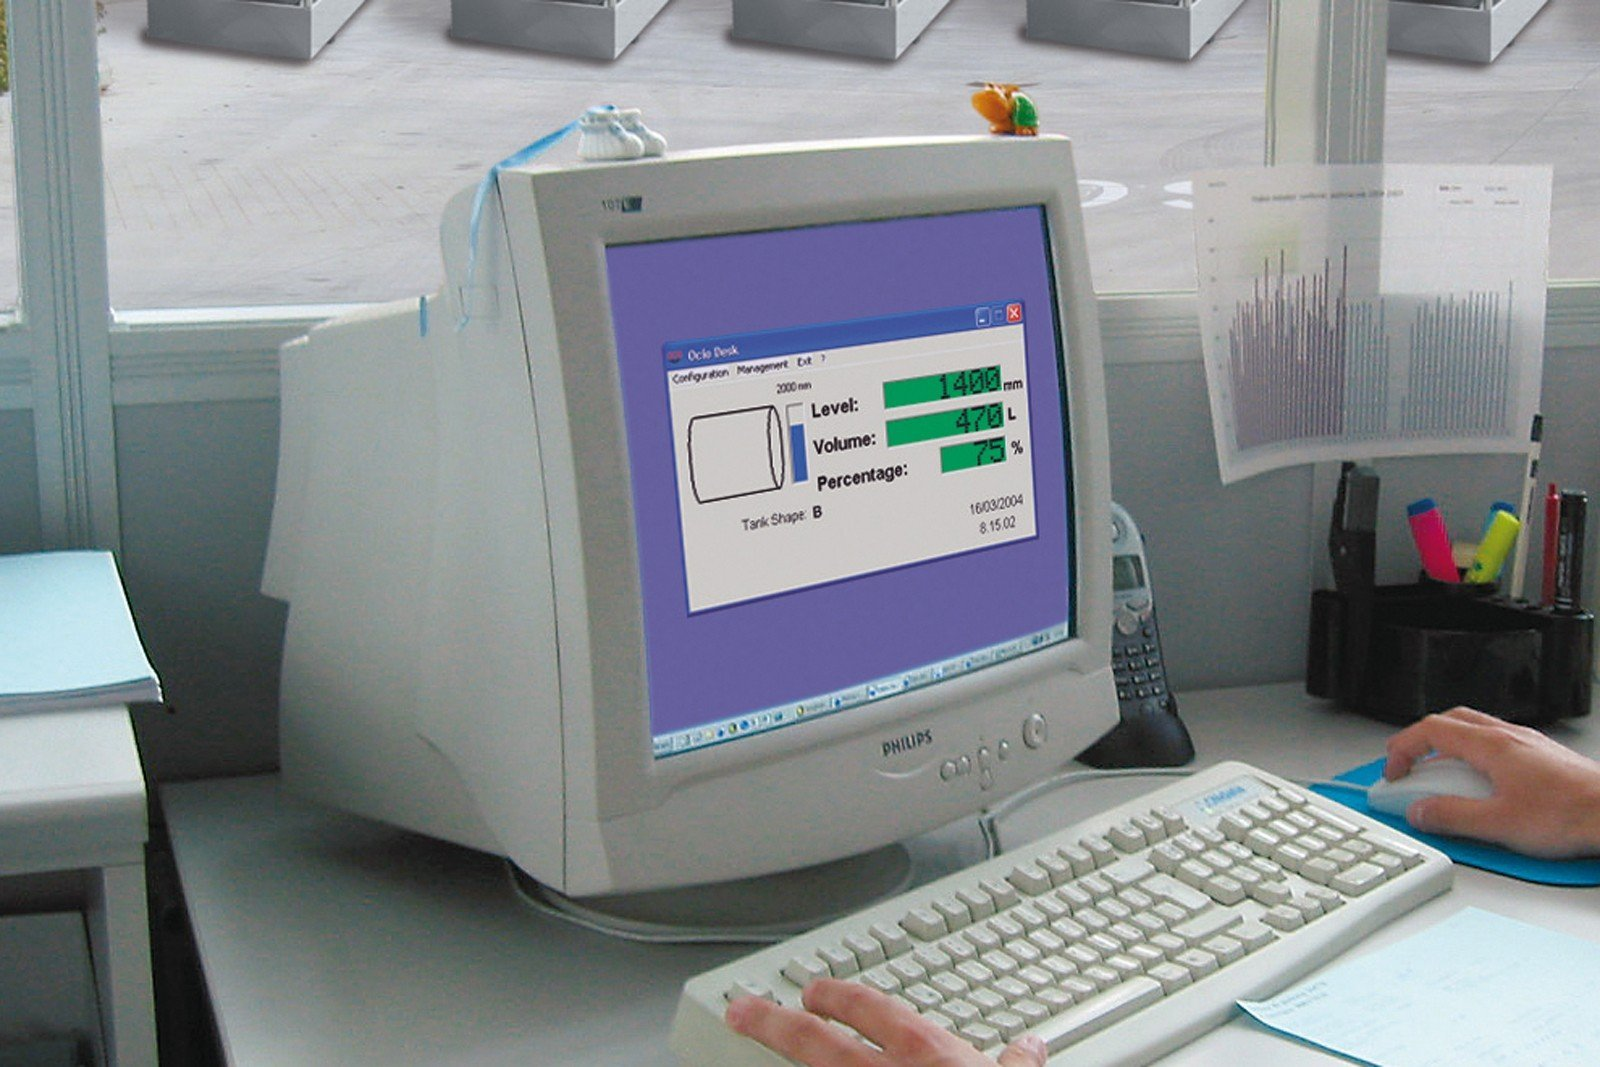 026-1999-000 - Kit personal computer